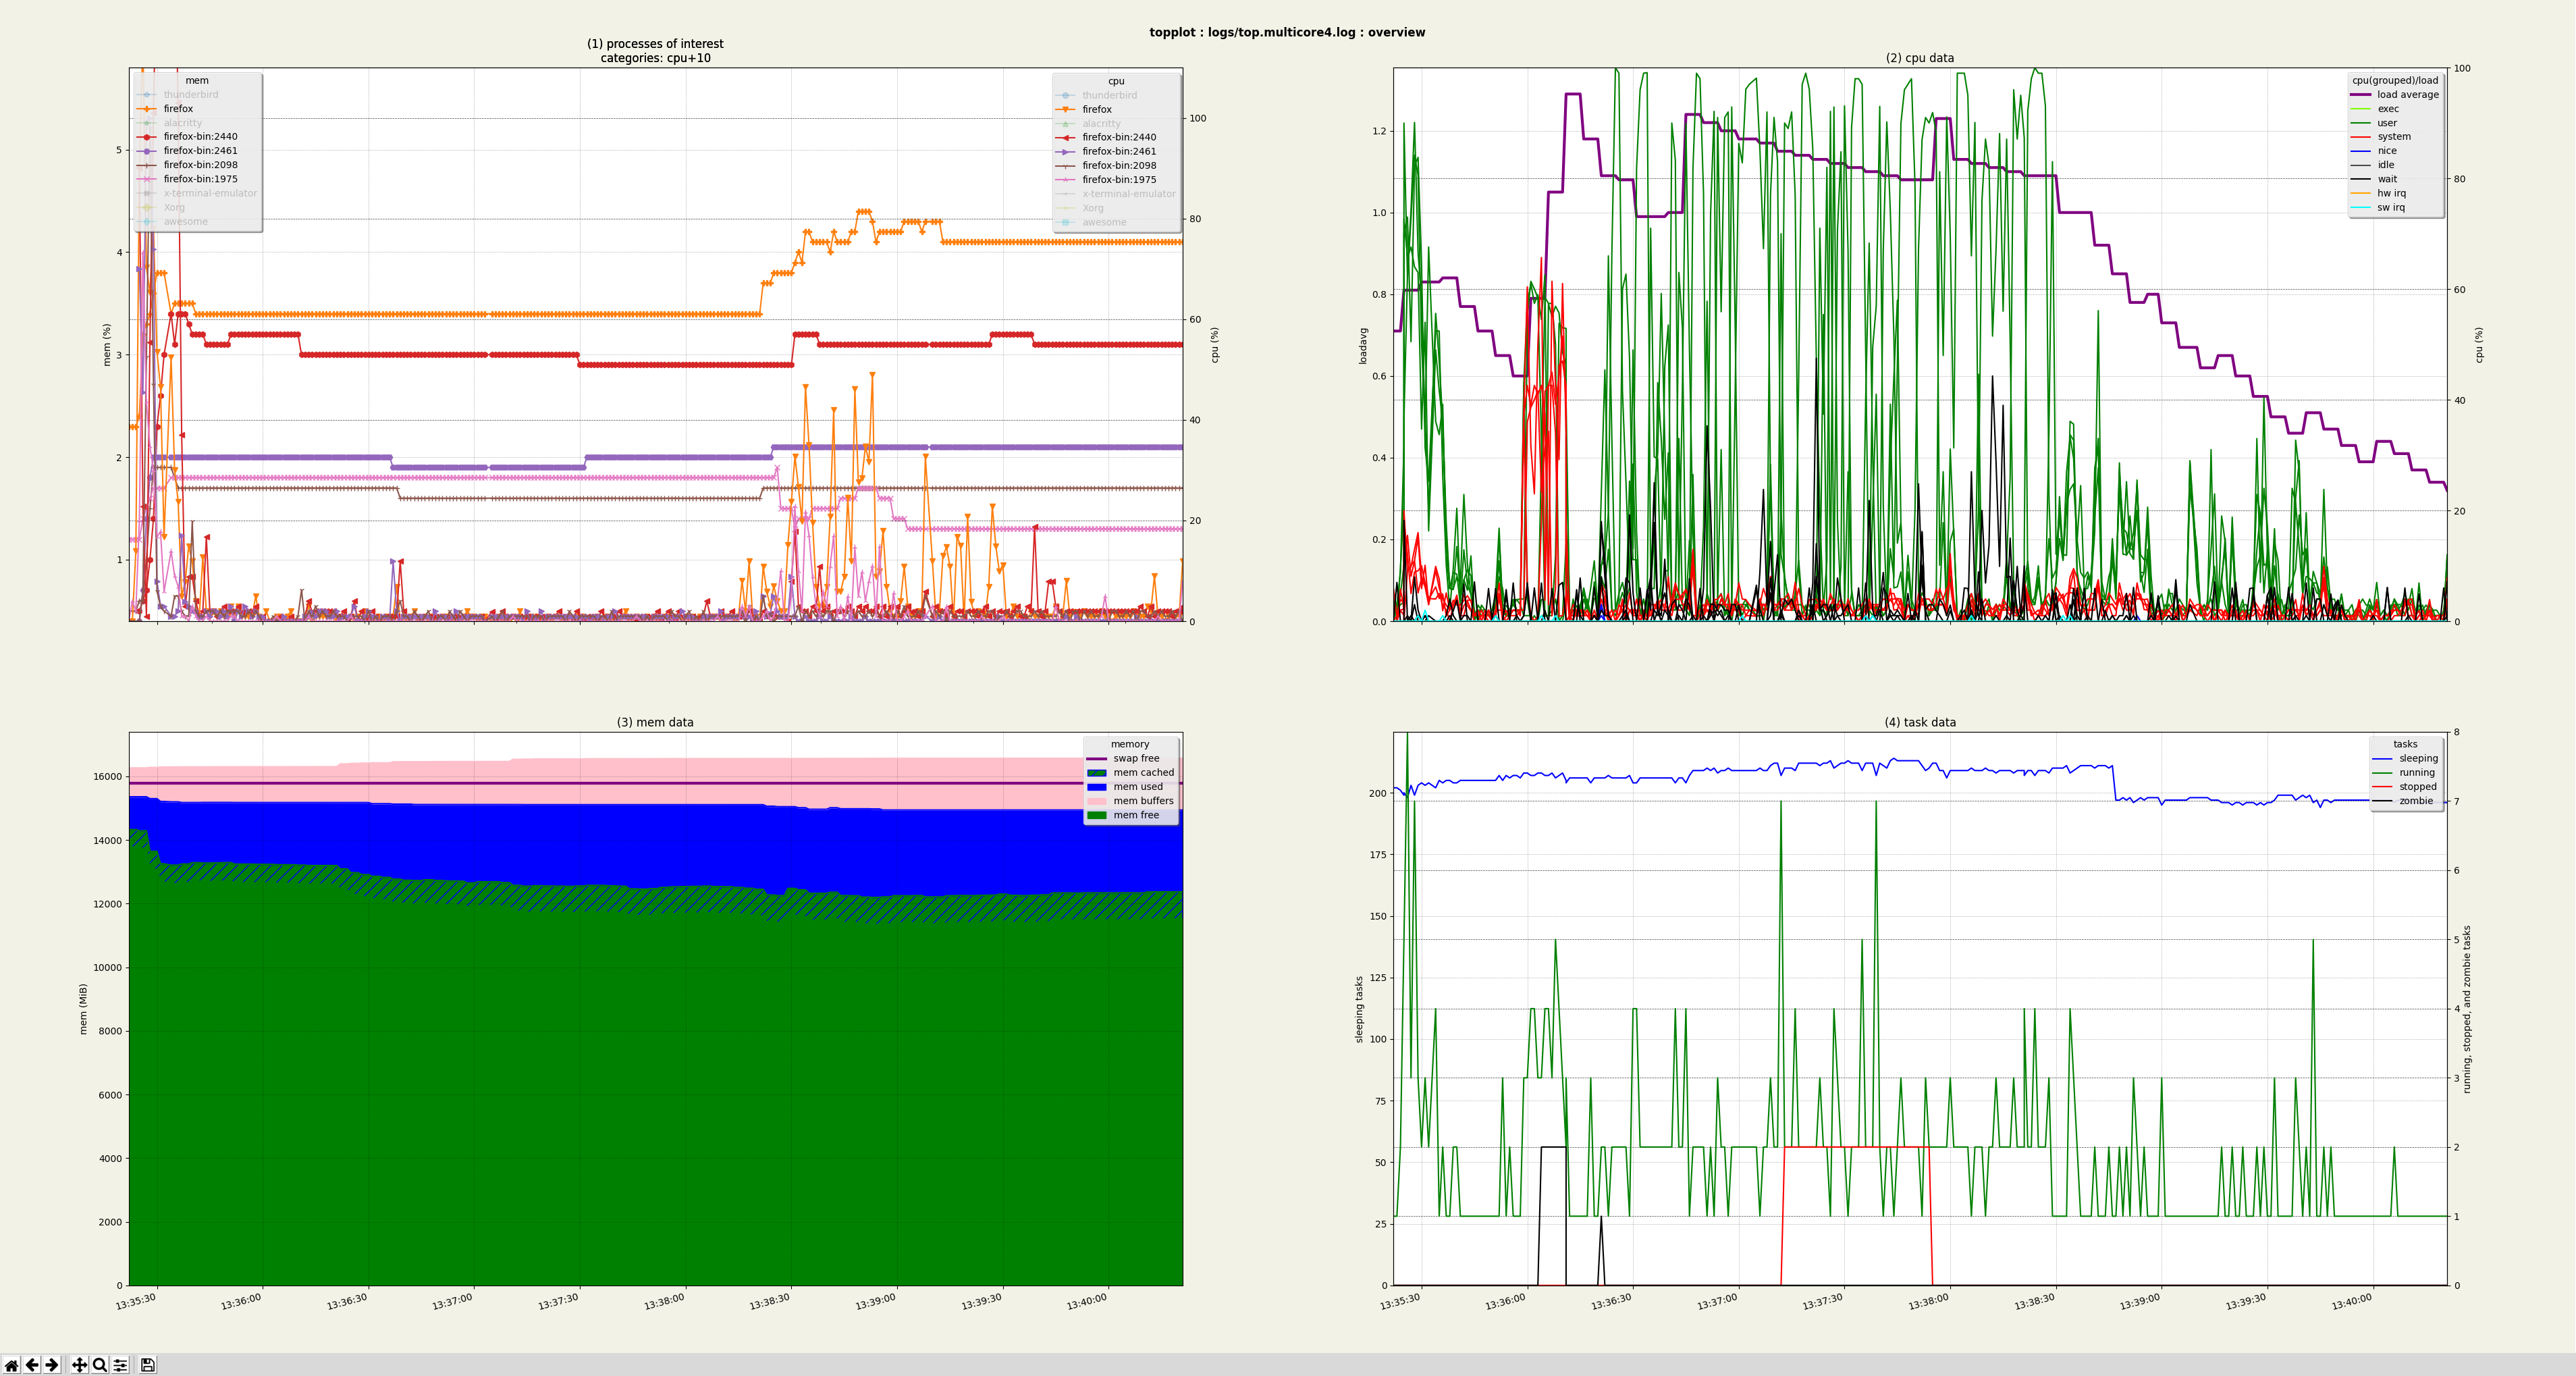 An image of the overview graphs appears here on the website